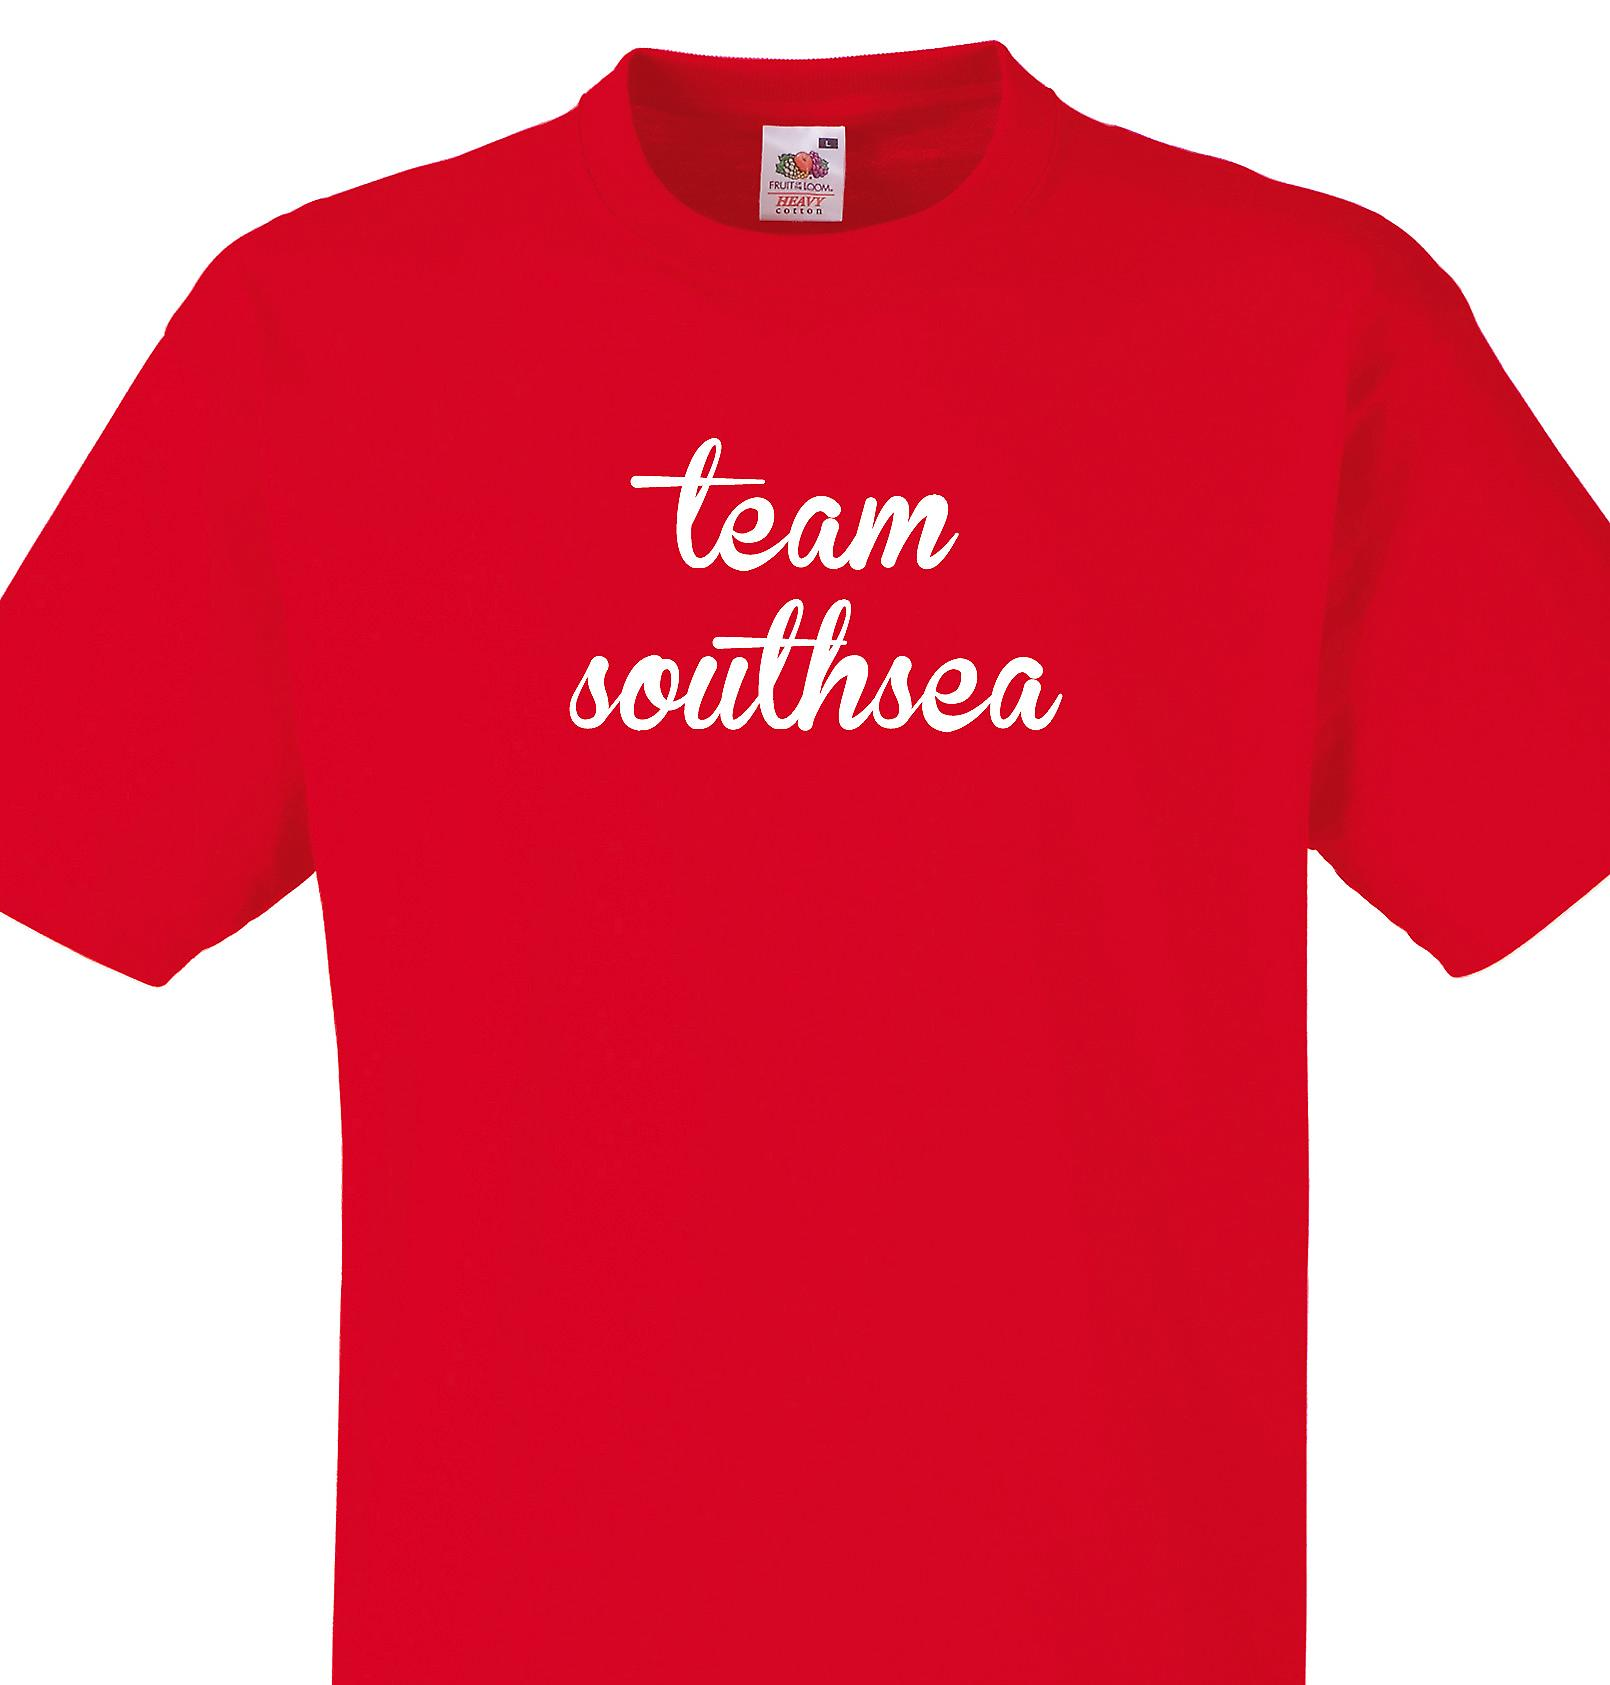 Team Southsea Red T shirt